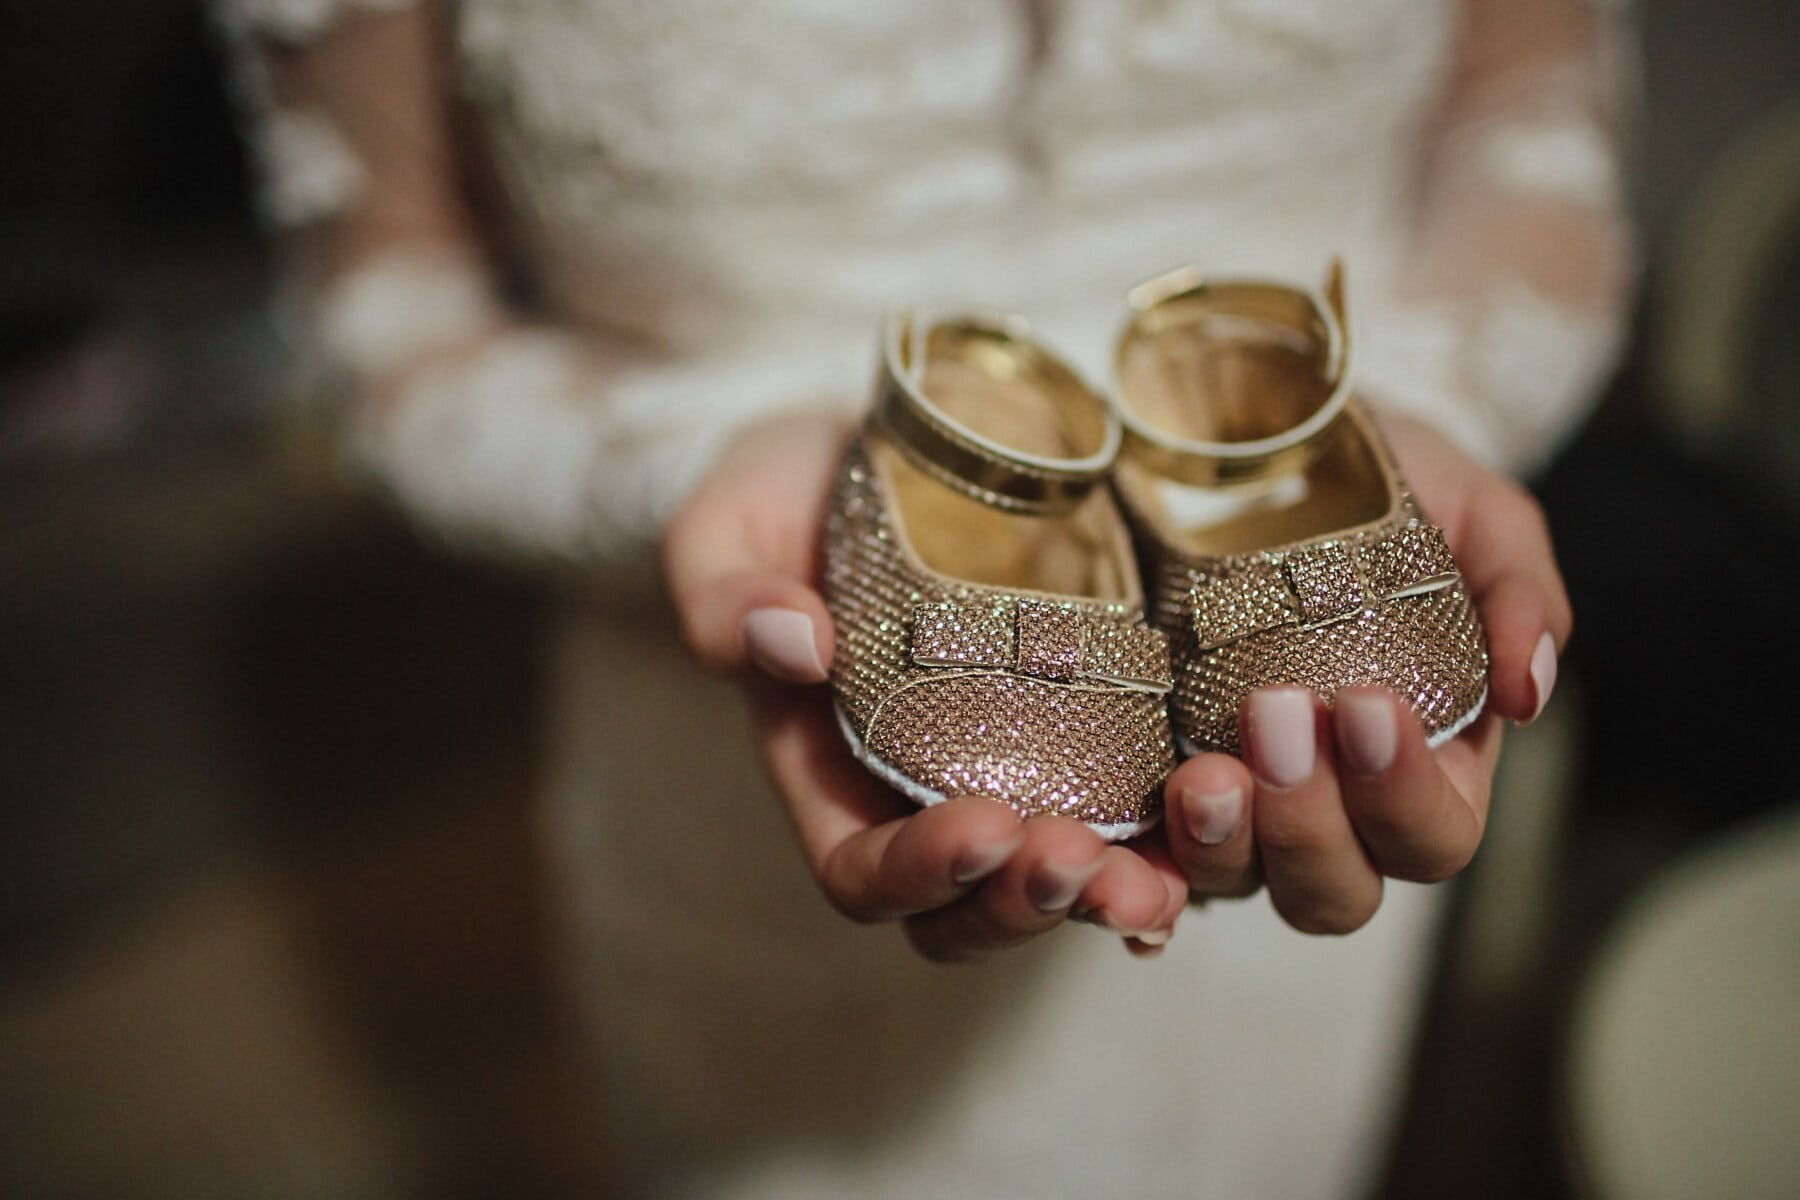 shoes, baby, miniature, golden shine, beautiful, close-up, finger, hands, woman, indoors